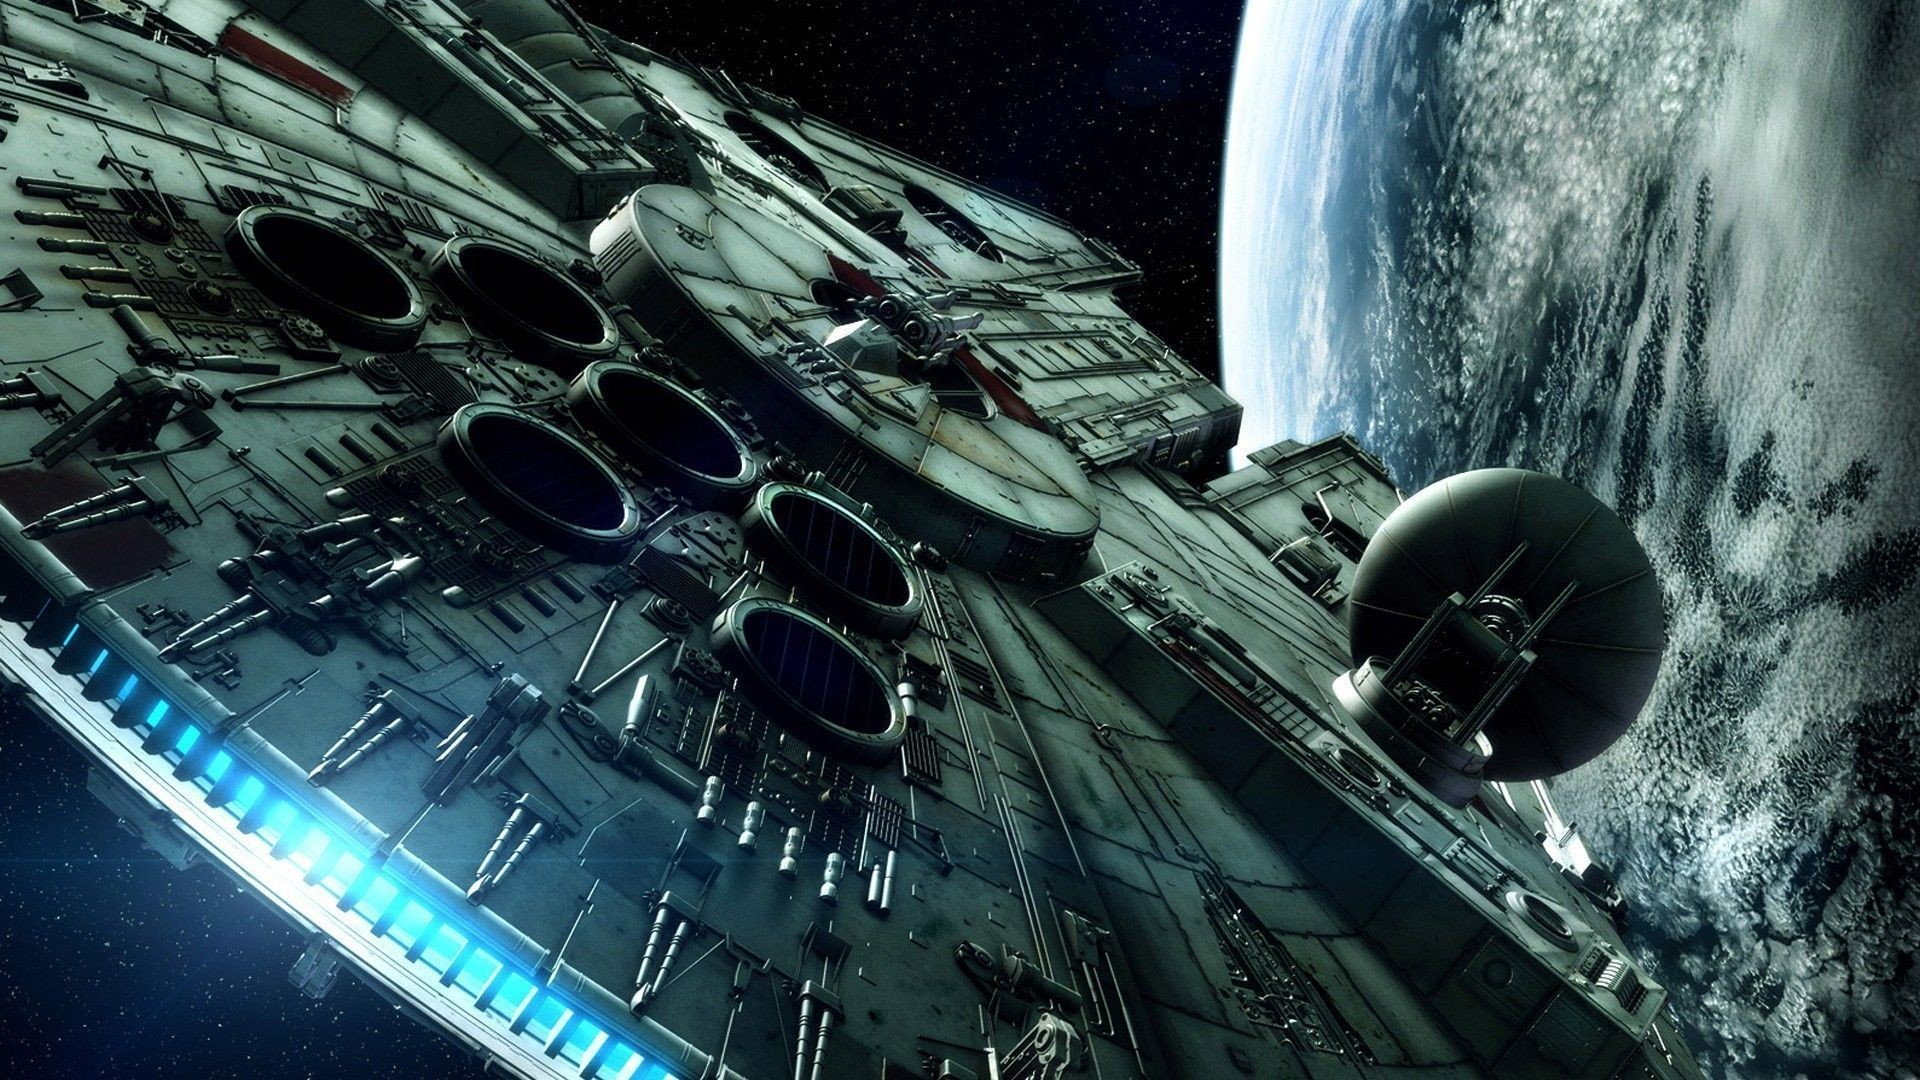 Star Wars Wallpaper 1920x1080 Hd Posted By Sarah Walker